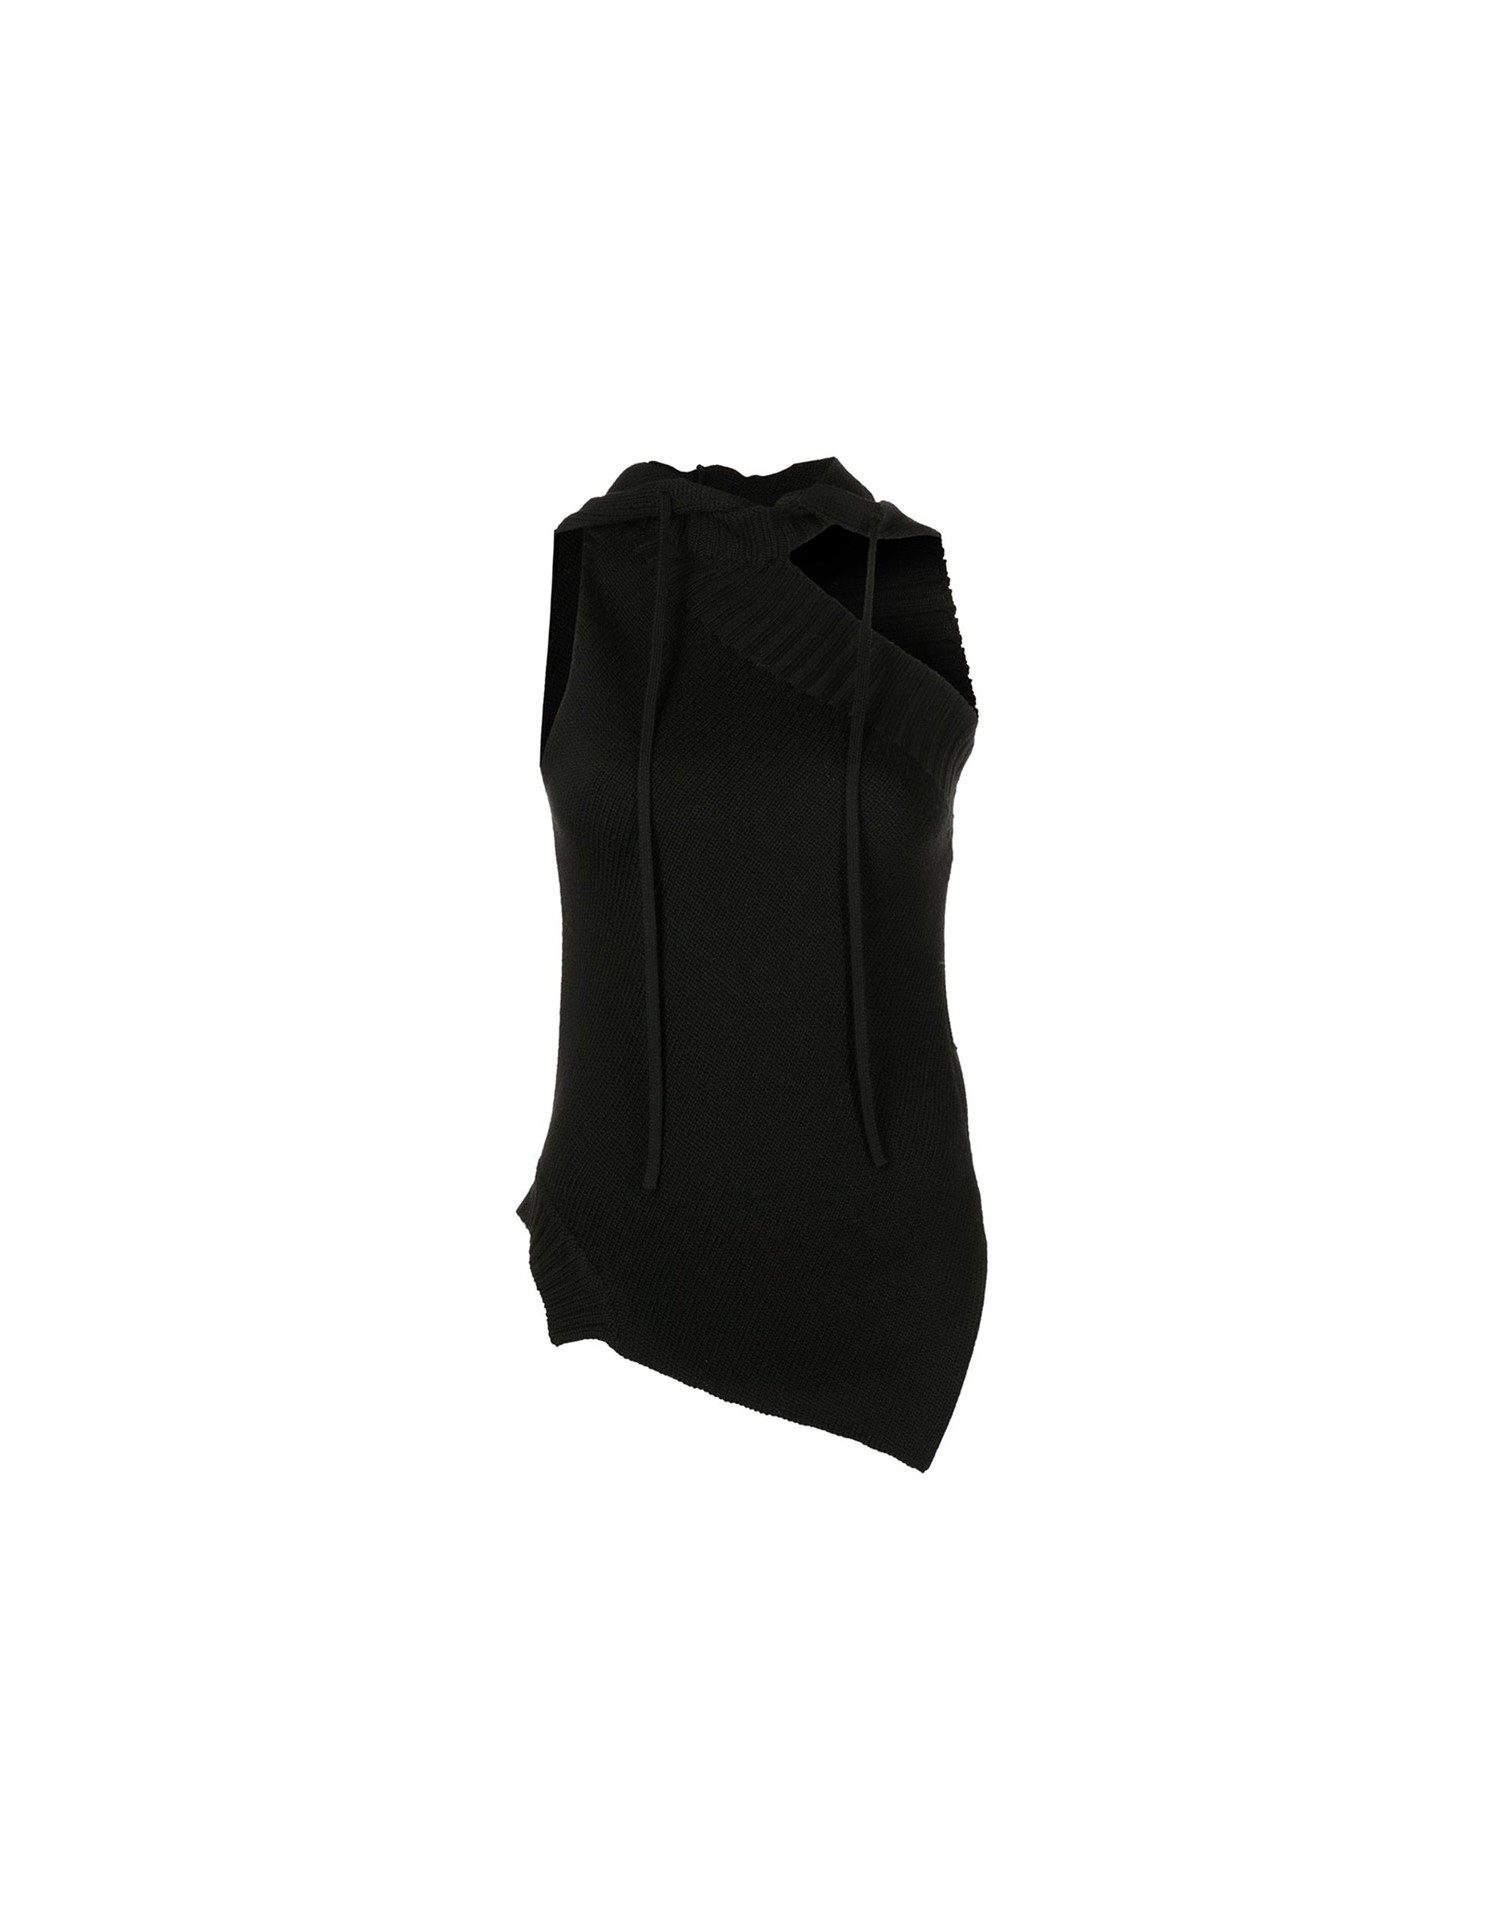 MONSE Sleeveless Hoodie Knit Top in Black on Model Front Side View